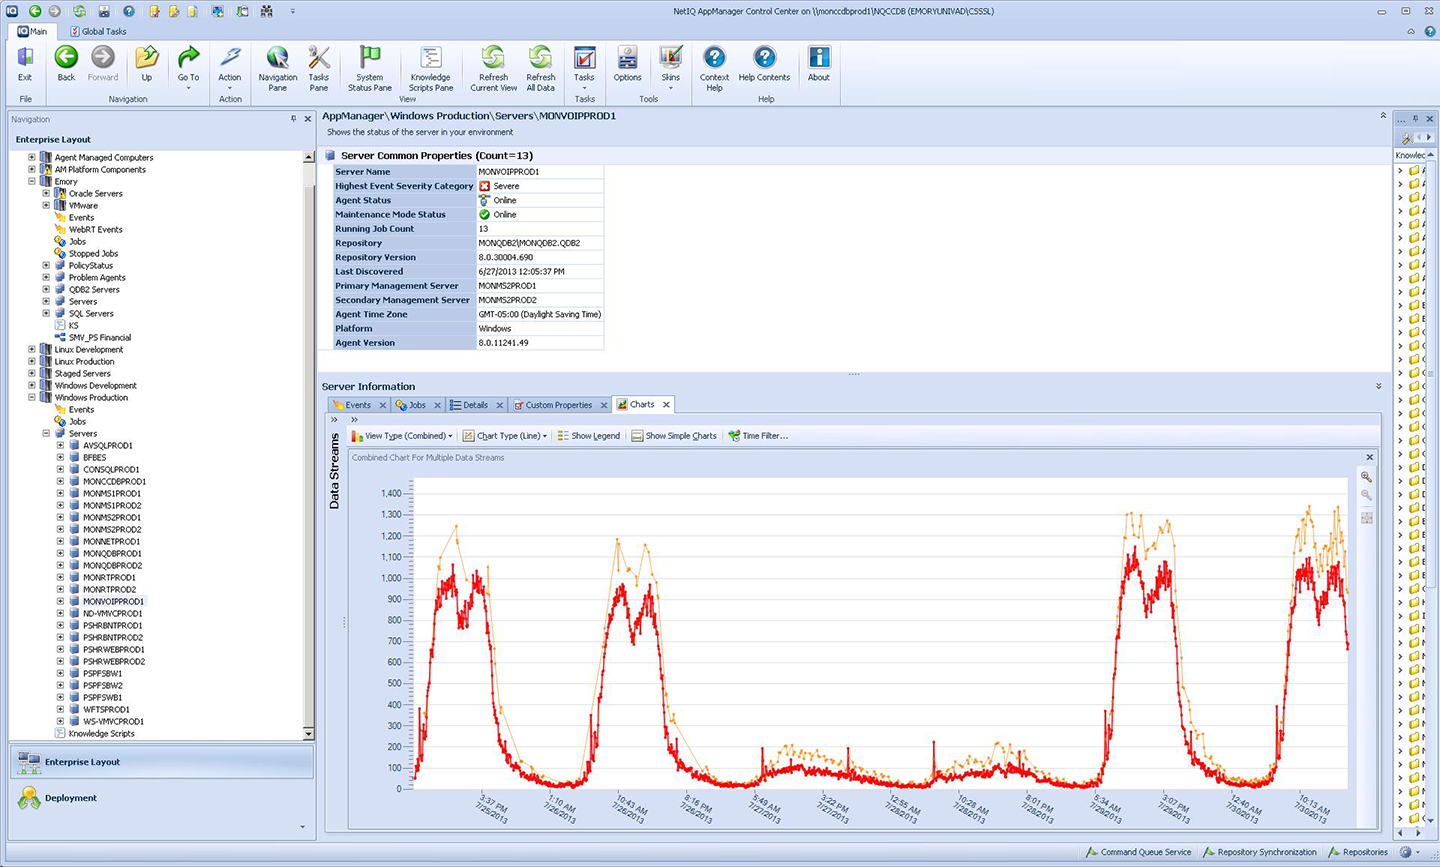 NetIQ Screenshot: Monitoring Specific Activity